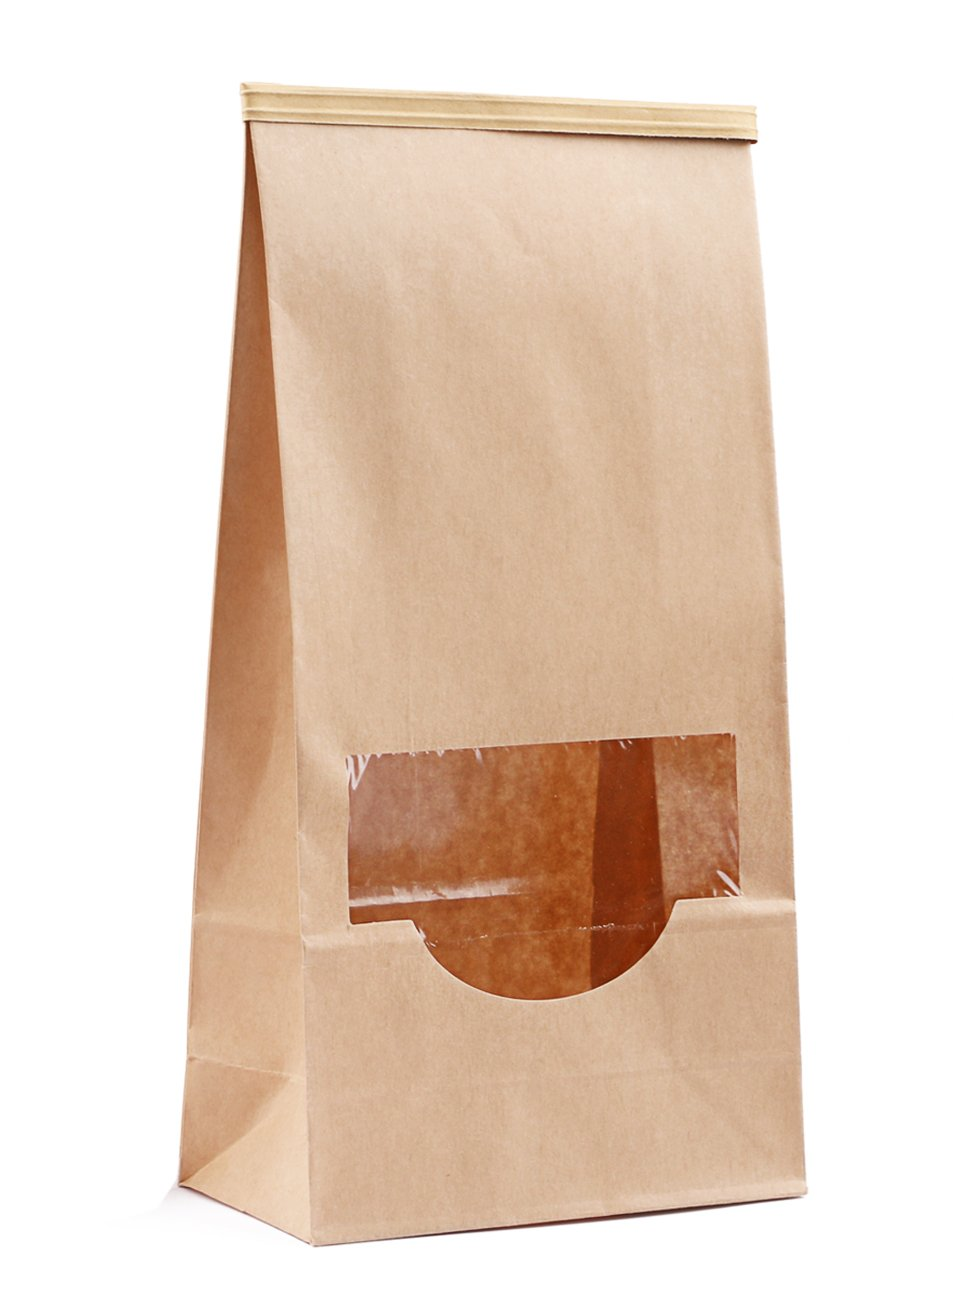 Katkitchen 25-Piece Stand up Kraft Paper Bakery Treat Bags, 9.3''x4.7''x2.4'' Resealable Food Storage Cookie Popcorn Bags Pouch Take Out Containers with Windows & Tin Tied Closure